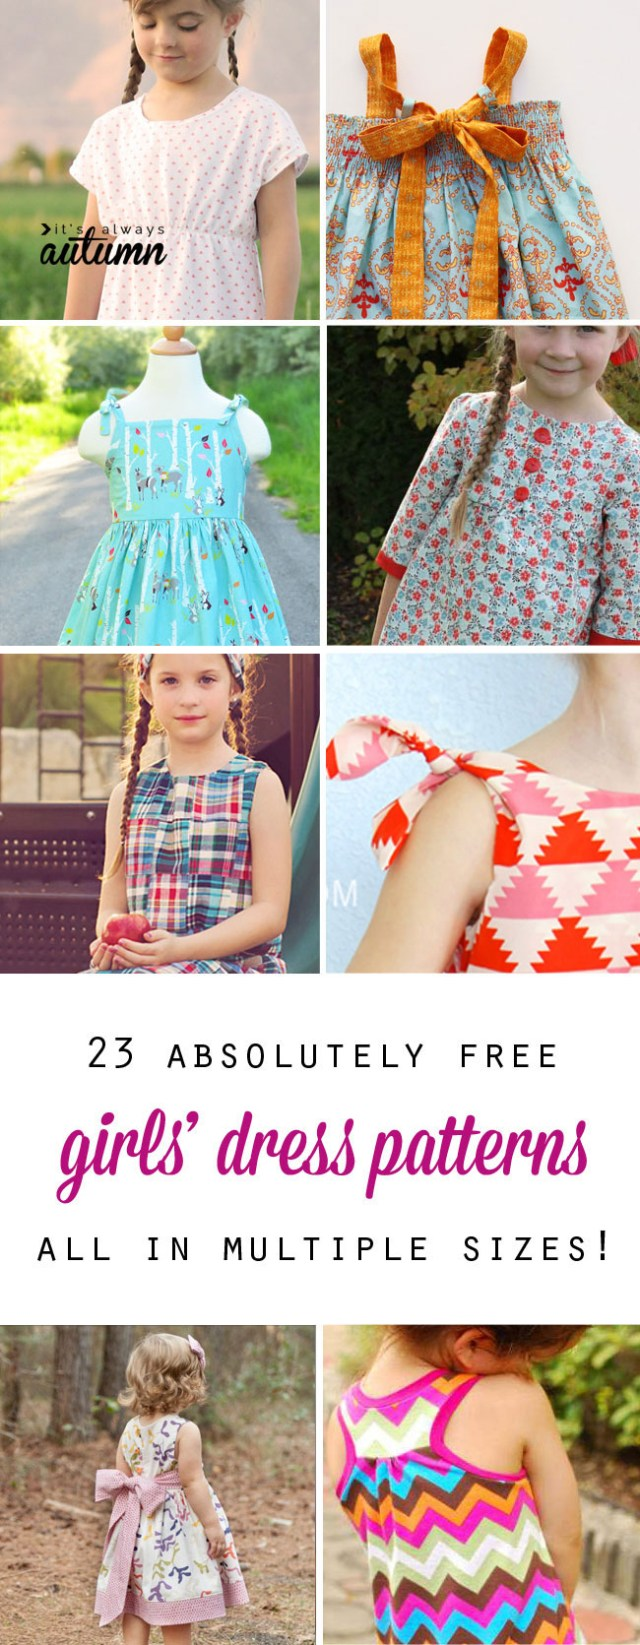 African Dress Patterns For Sewing Free Girls Dress Patterns Charity Sewing Its Always Autumn